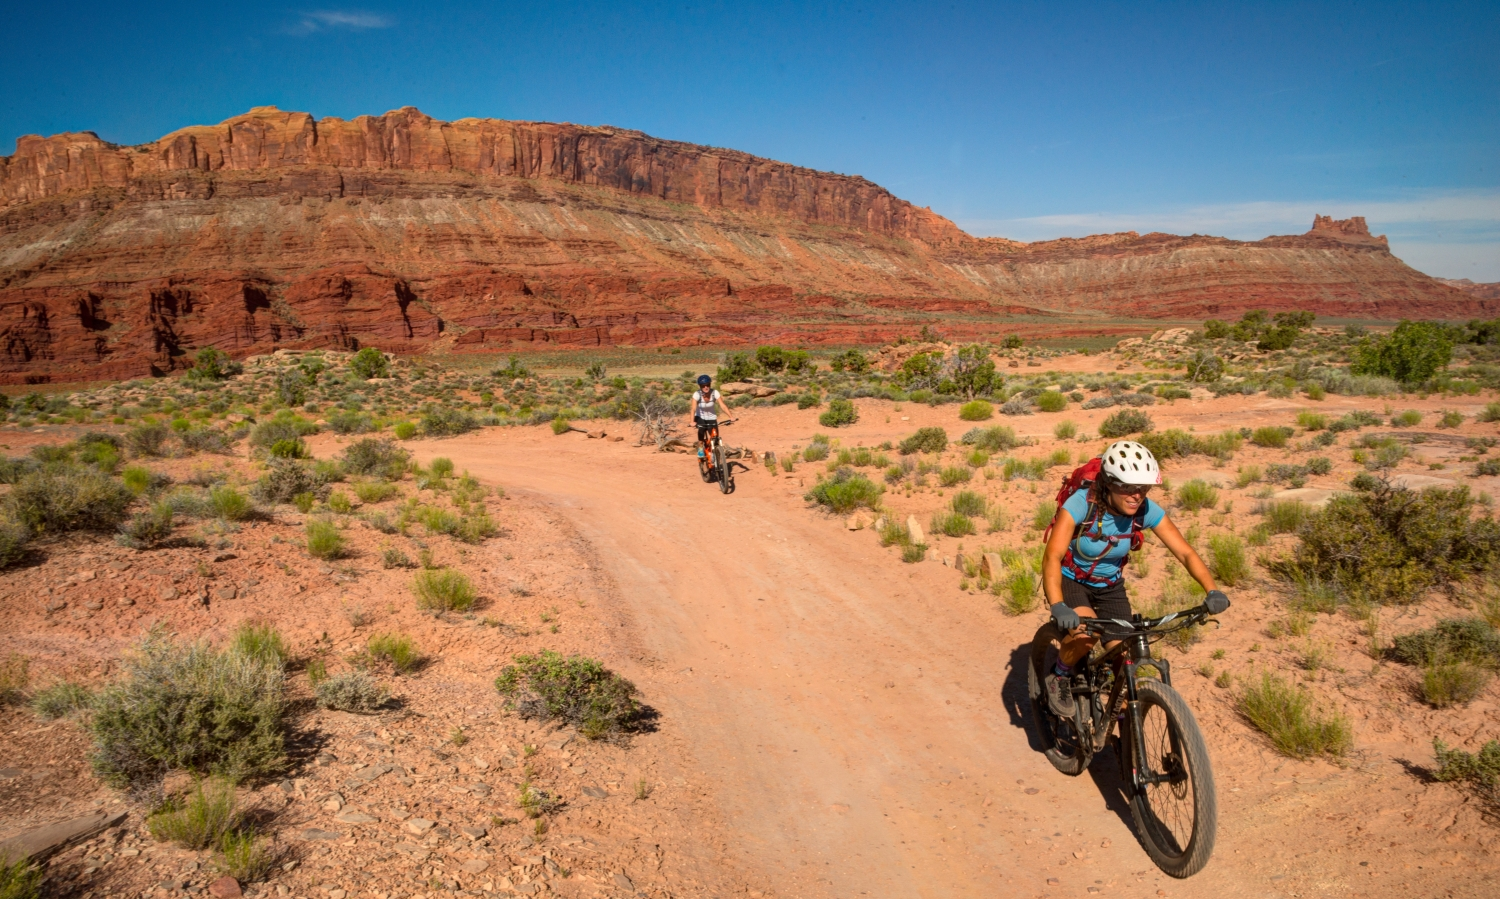 The numerous bands of the Cutler formation in the Moab Rim make for a colorful background to a flowy ride.